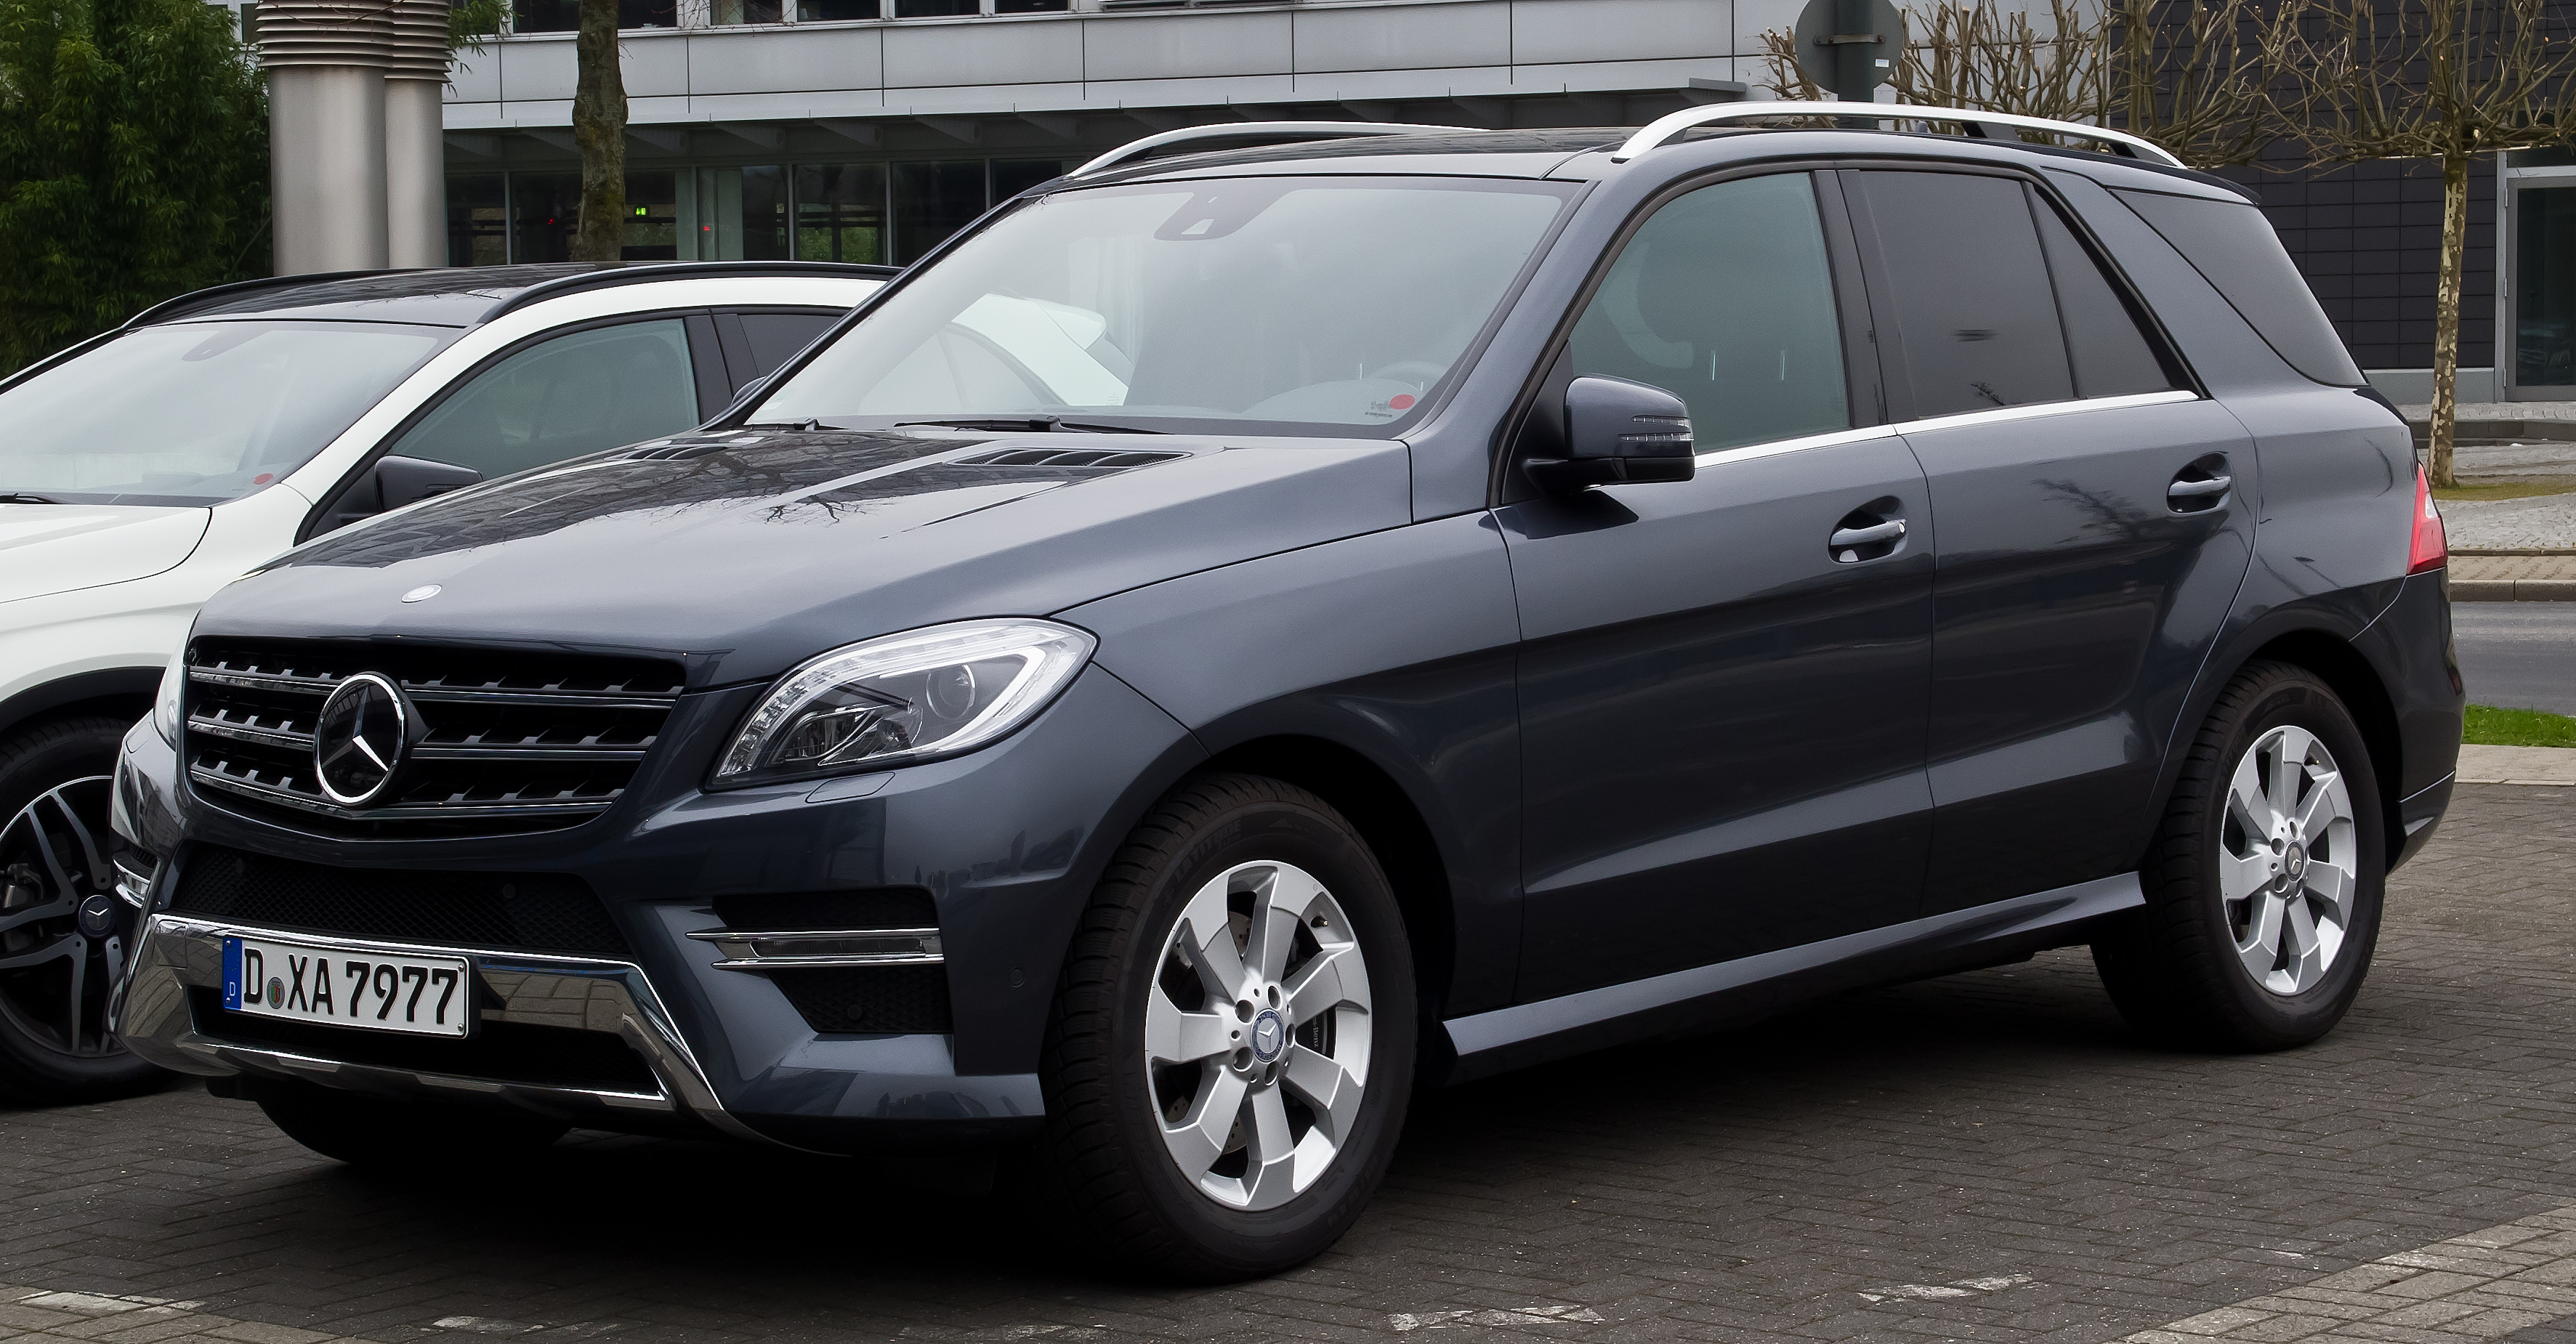 file mercedes benz ml 350 bluetec 4matic sport paket amg w 166 frontansicht 16 m rz 2014. Black Bedroom Furniture Sets. Home Design Ideas